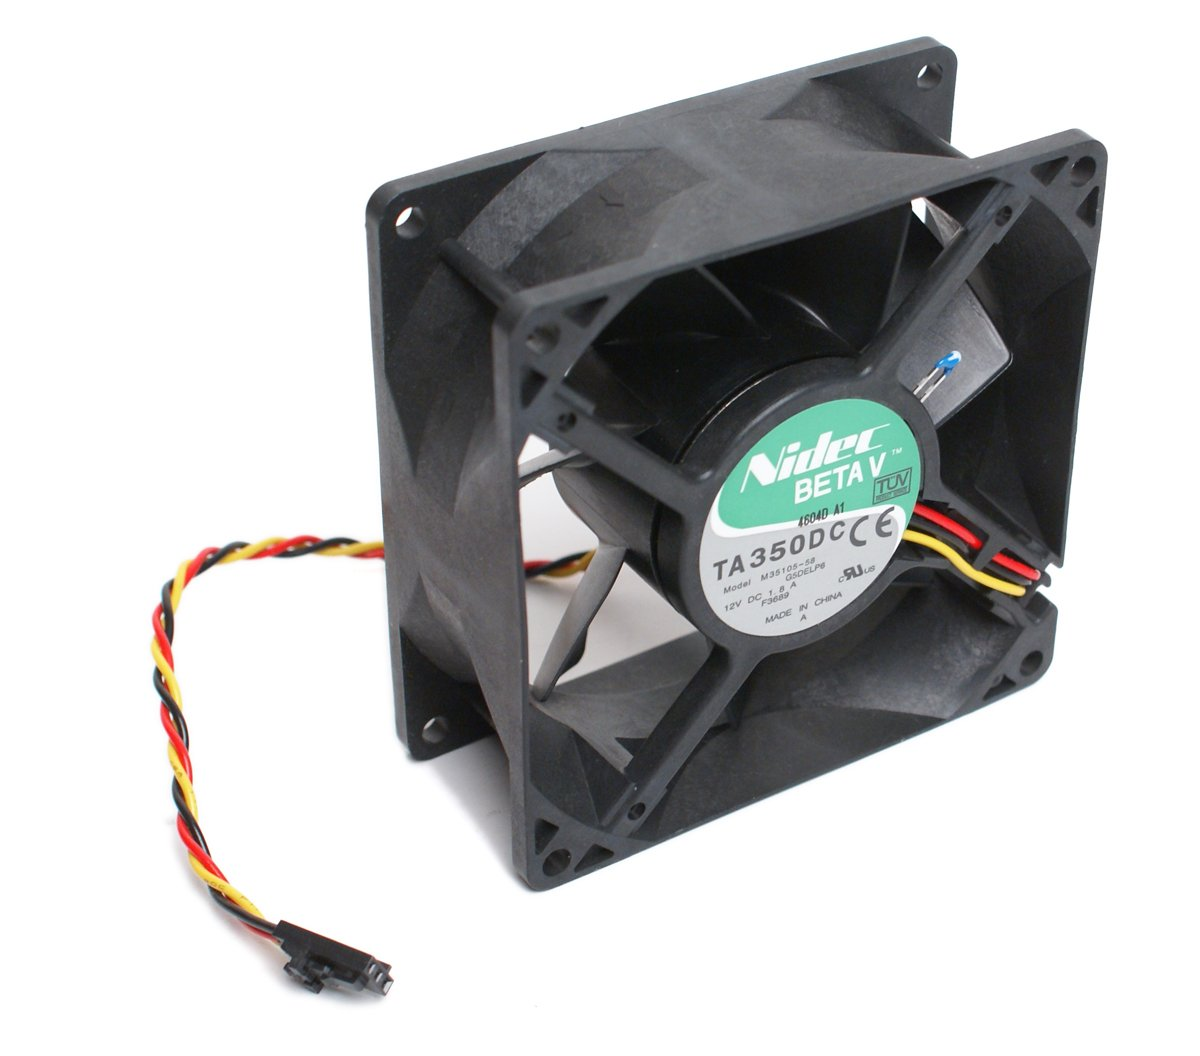 NIDEC BetaV TA350DC Quiet Case Cooling Thermal Sensor Fan 12V 1.8A, 3-Pin (3-Wire Lead), 90mm x 90mm x 38mm, Compatible Model Number: M35105-58